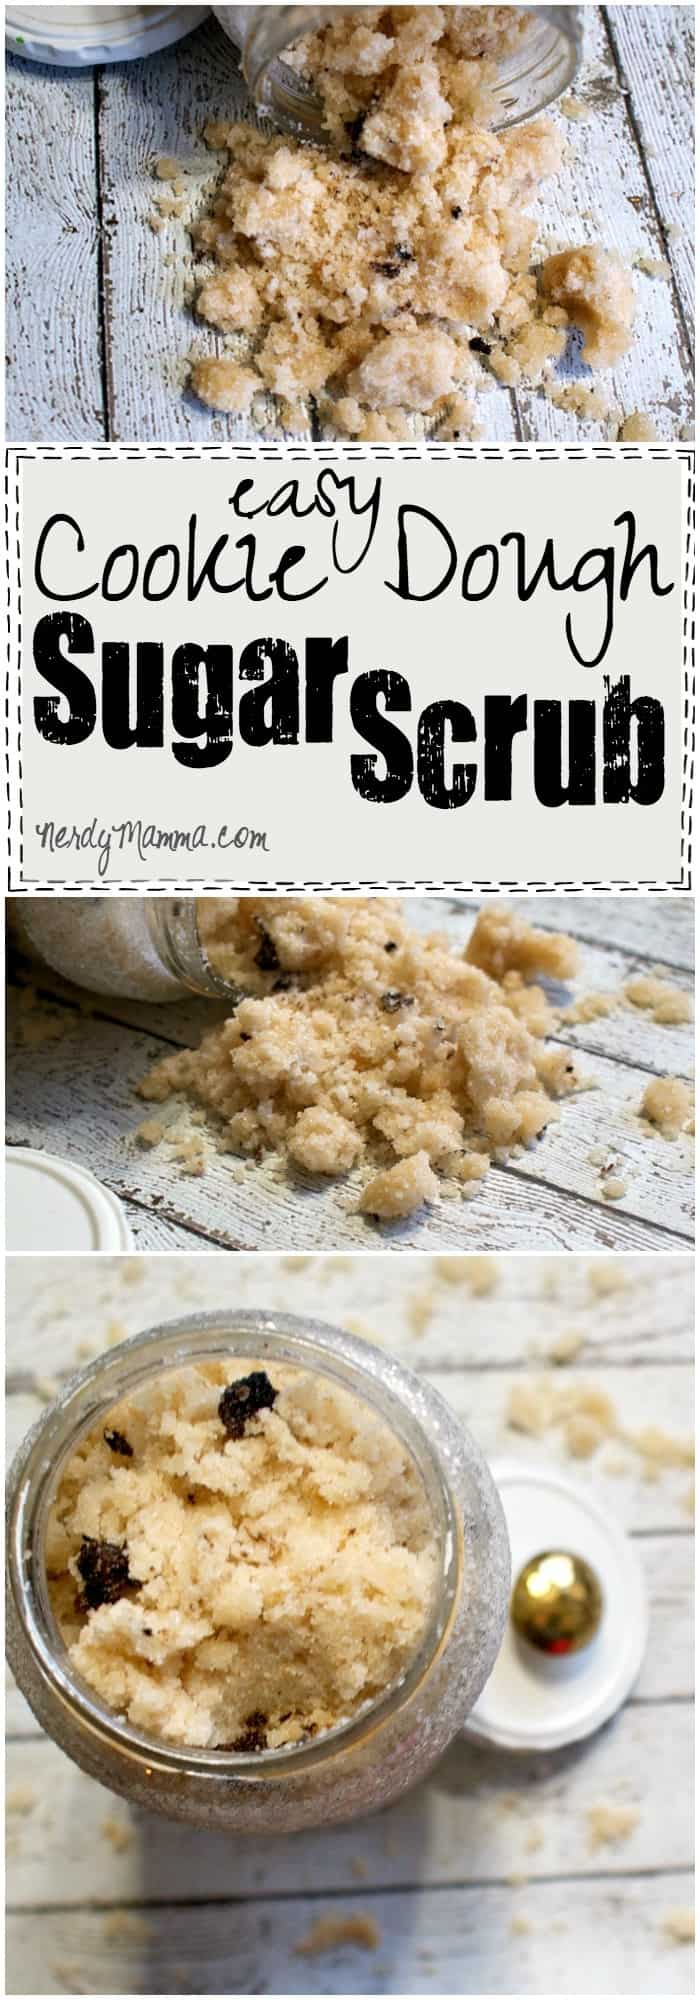 Oh, what I wouldn't give to be able to spend an hour with this Easy Cookie Dough Sugar Scrub. Kids keep hunting me down, though. Heh.